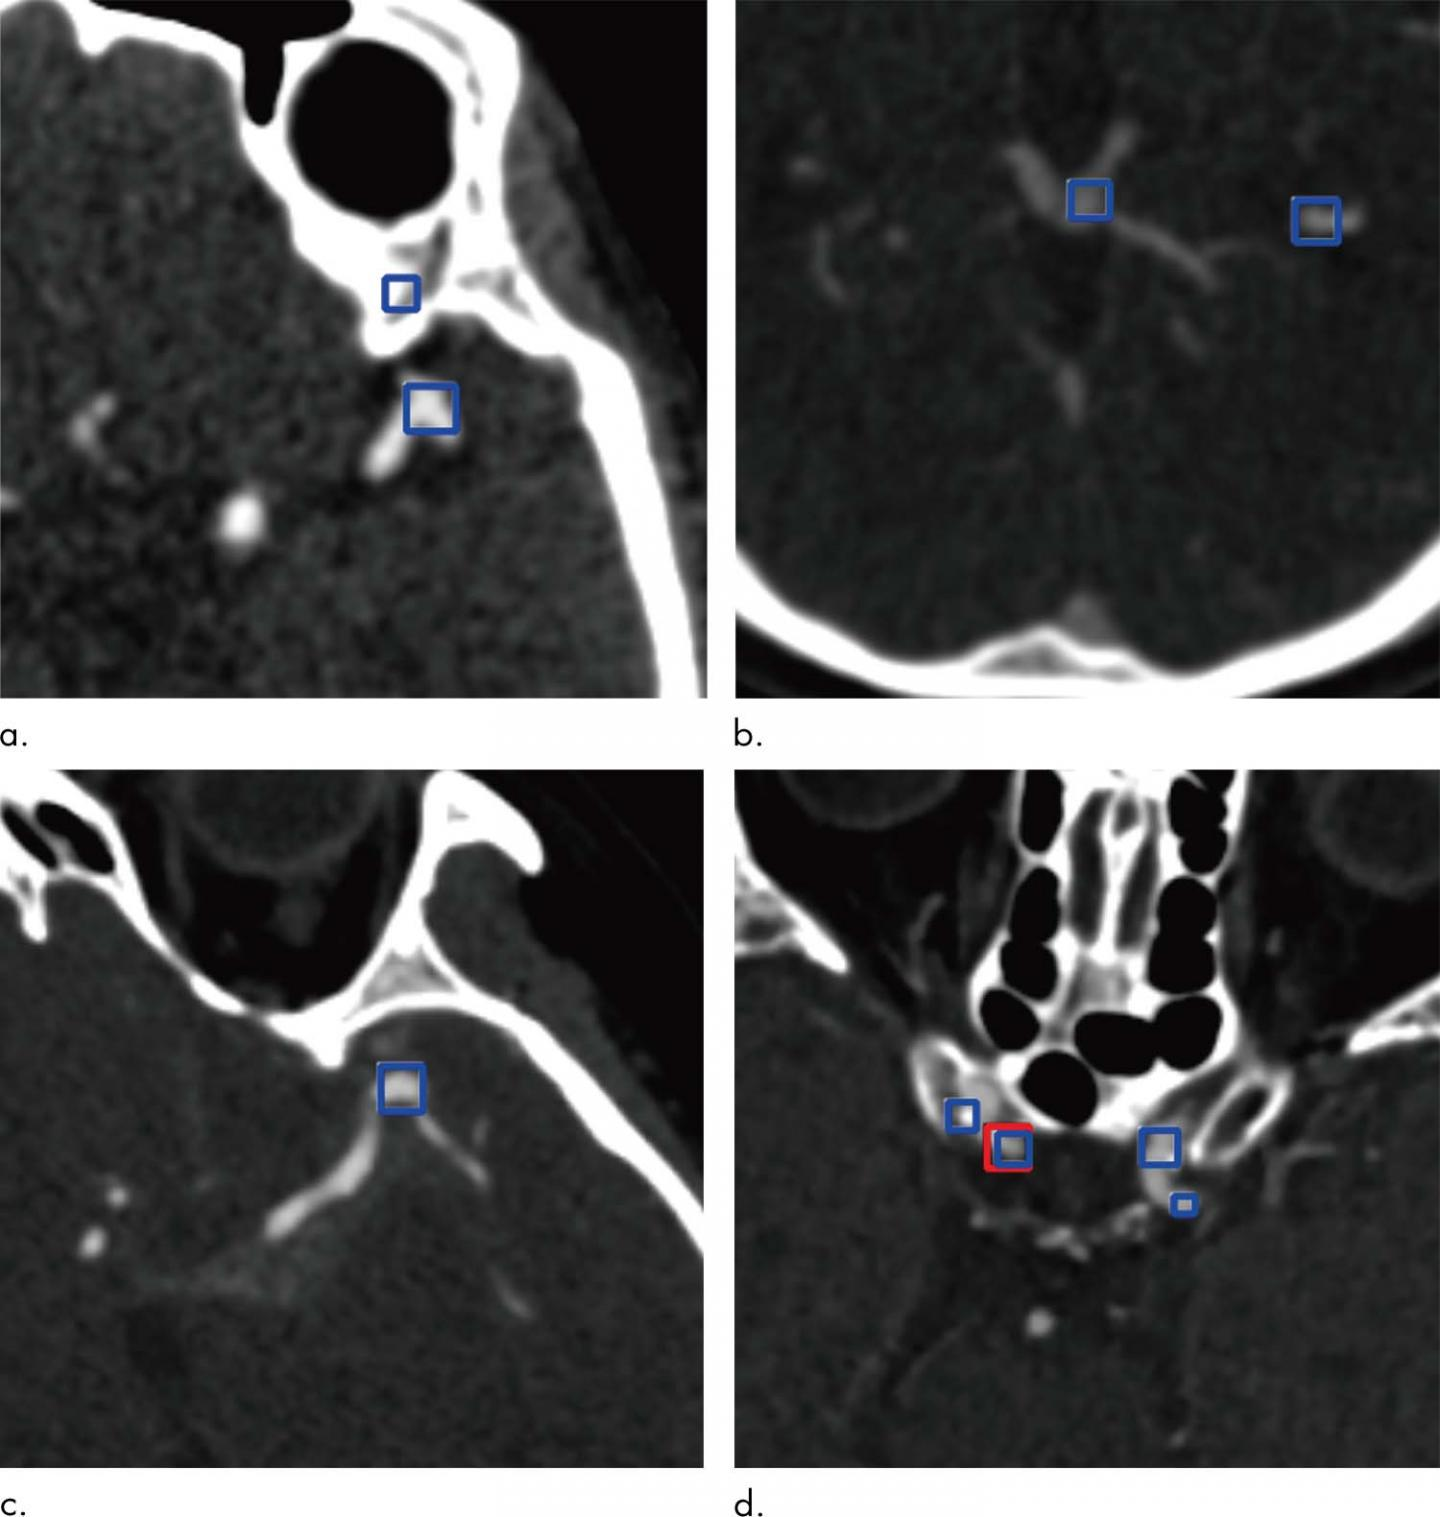 AI Helps Detect Brain Aneurysms on CT Angiography